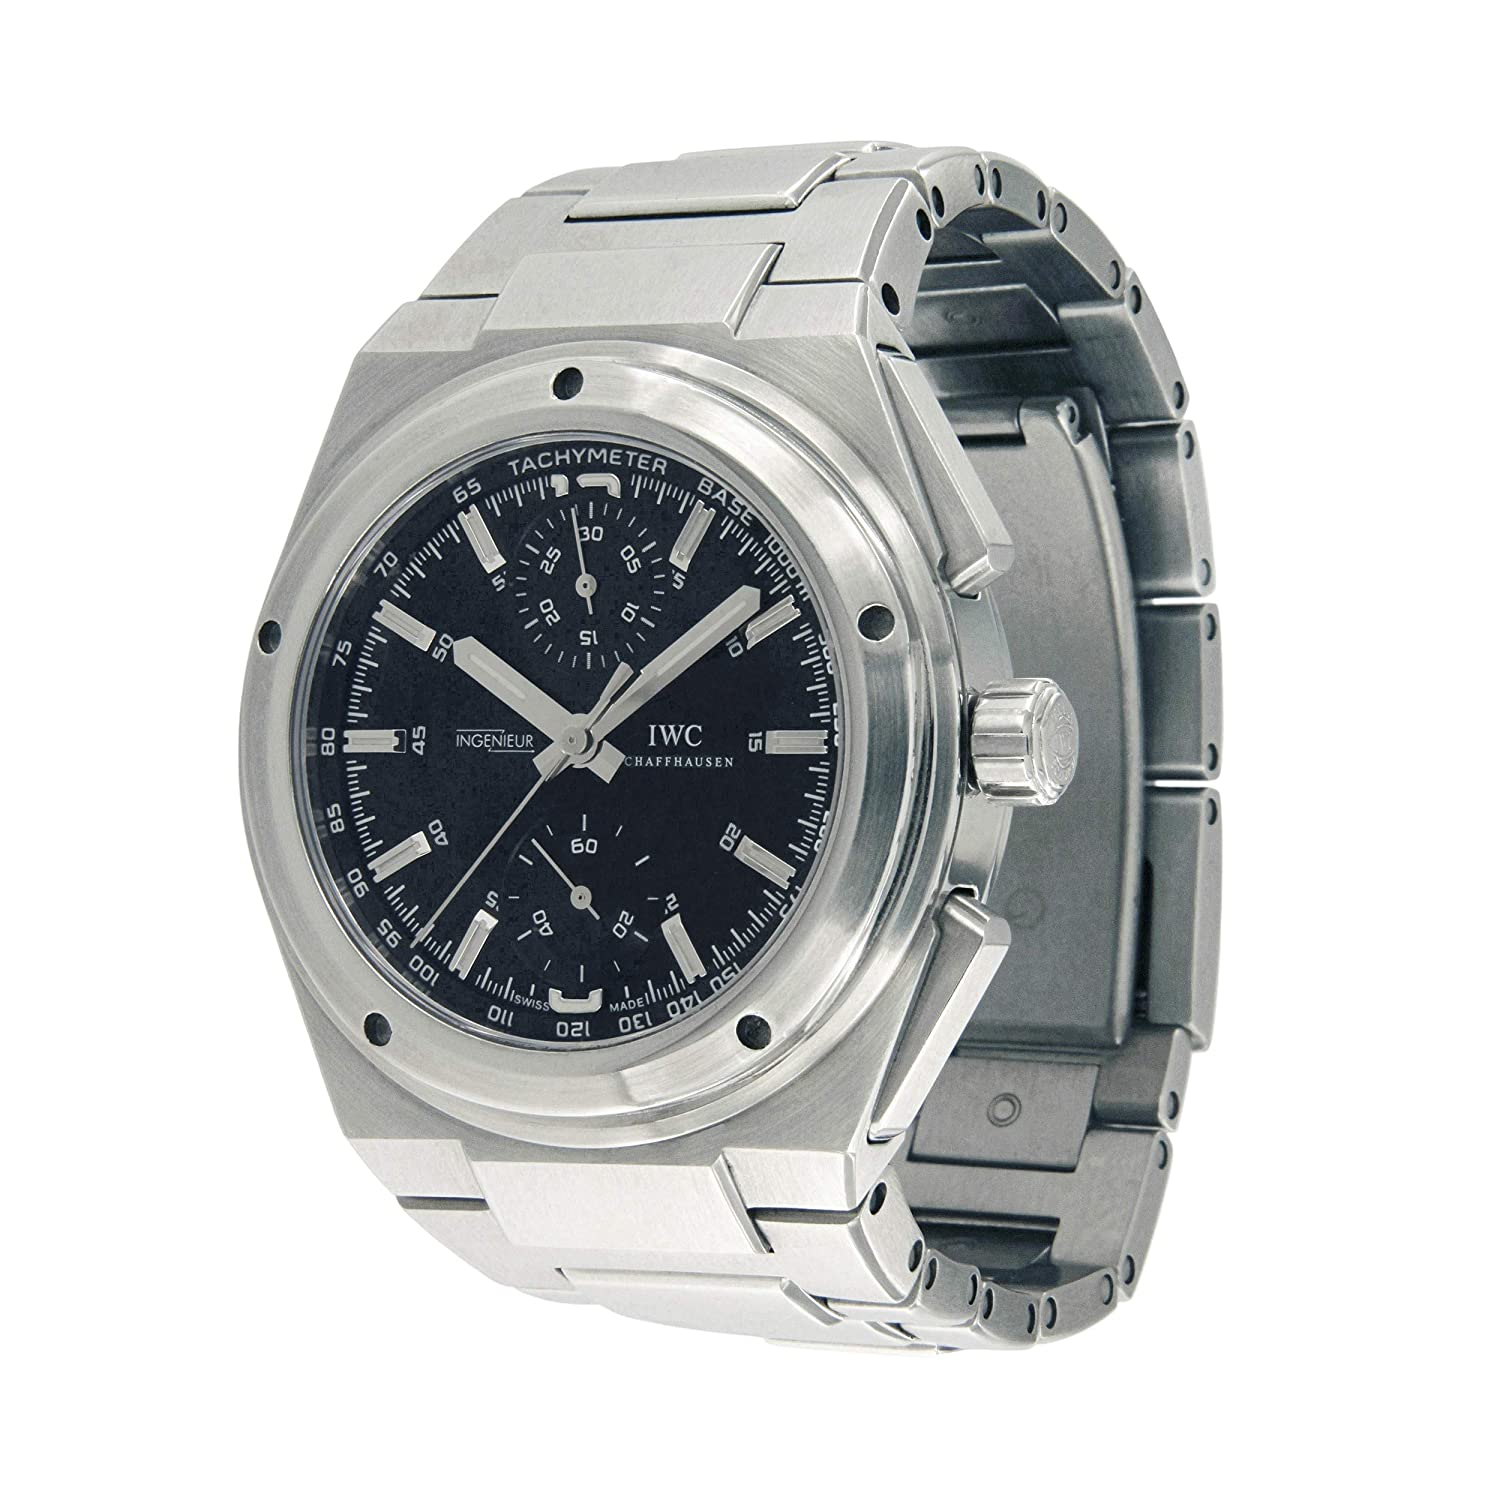 promo code c3a15 d4e6b Amazon.com: IWC Ingenieur Swiss-Automatic Male Watch ...